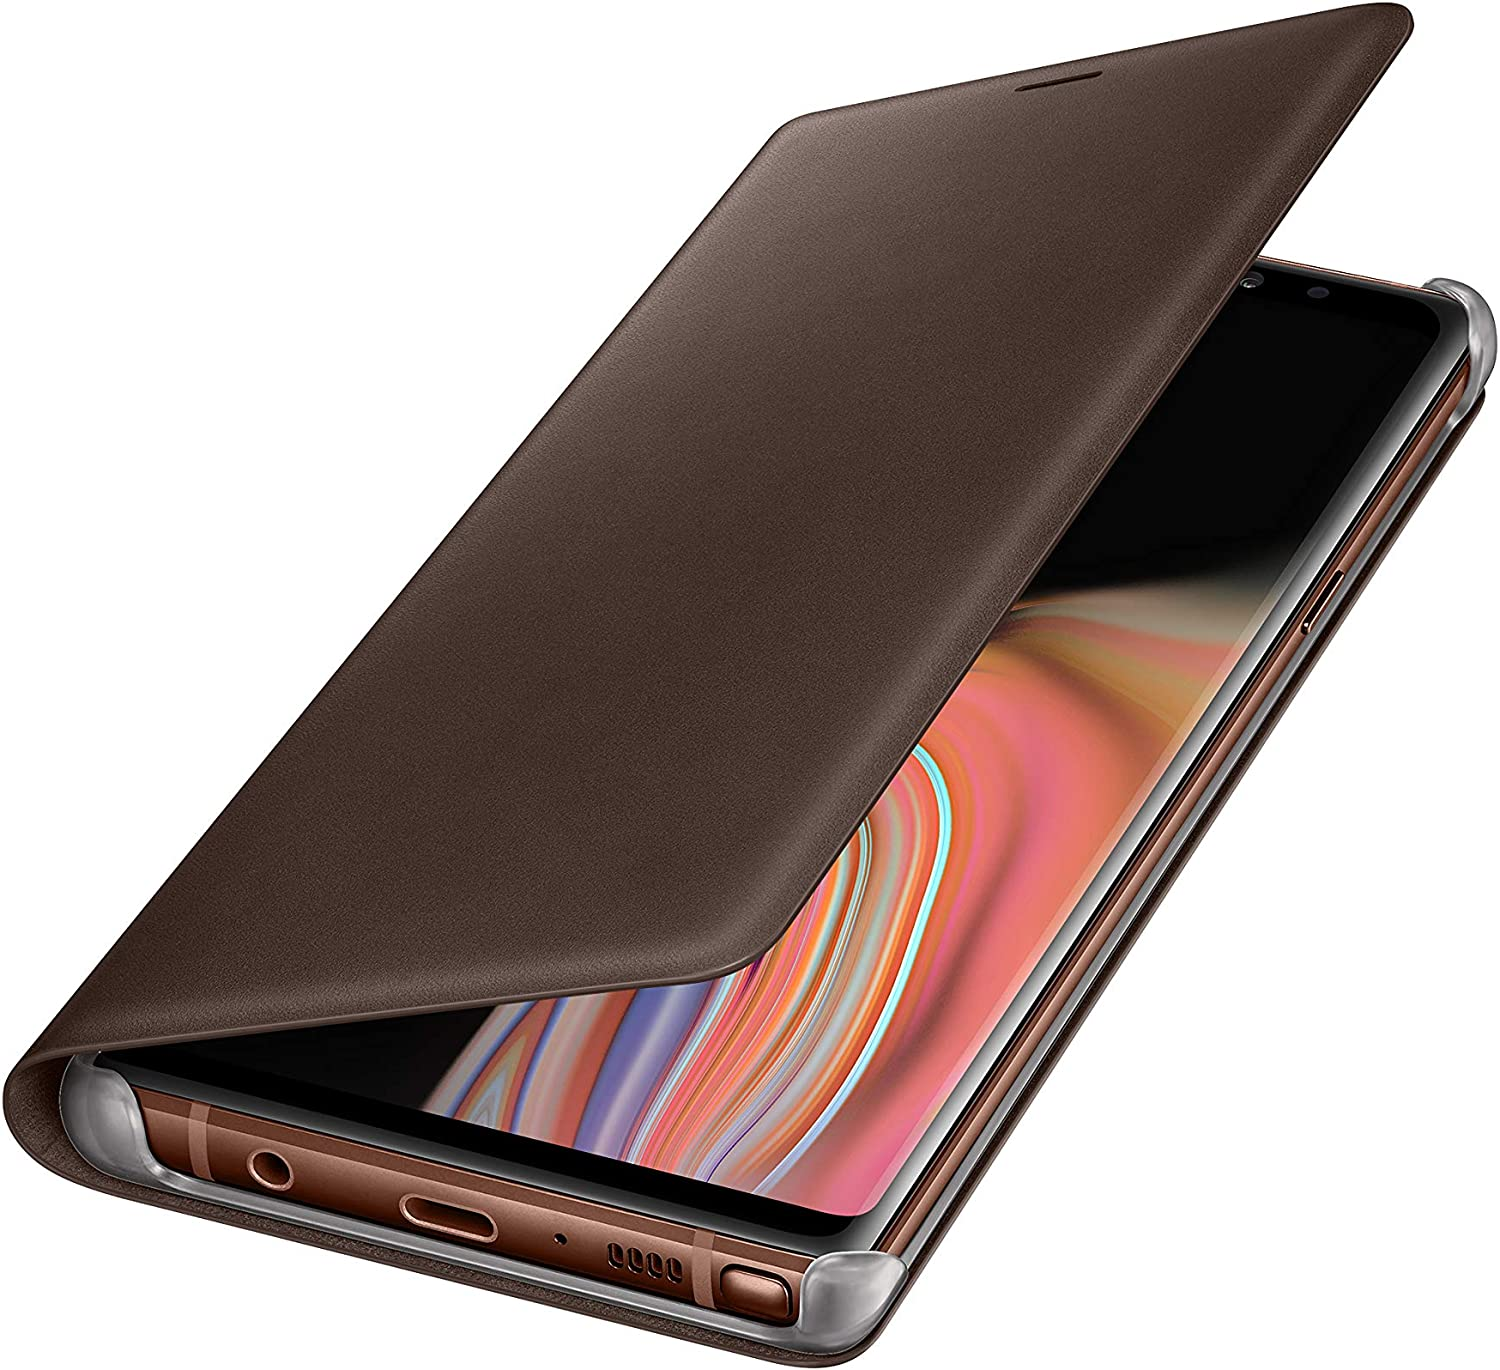 Samsung Galaxy Note9 Case, Genuine Leather Wallet Flip Cover, Brown